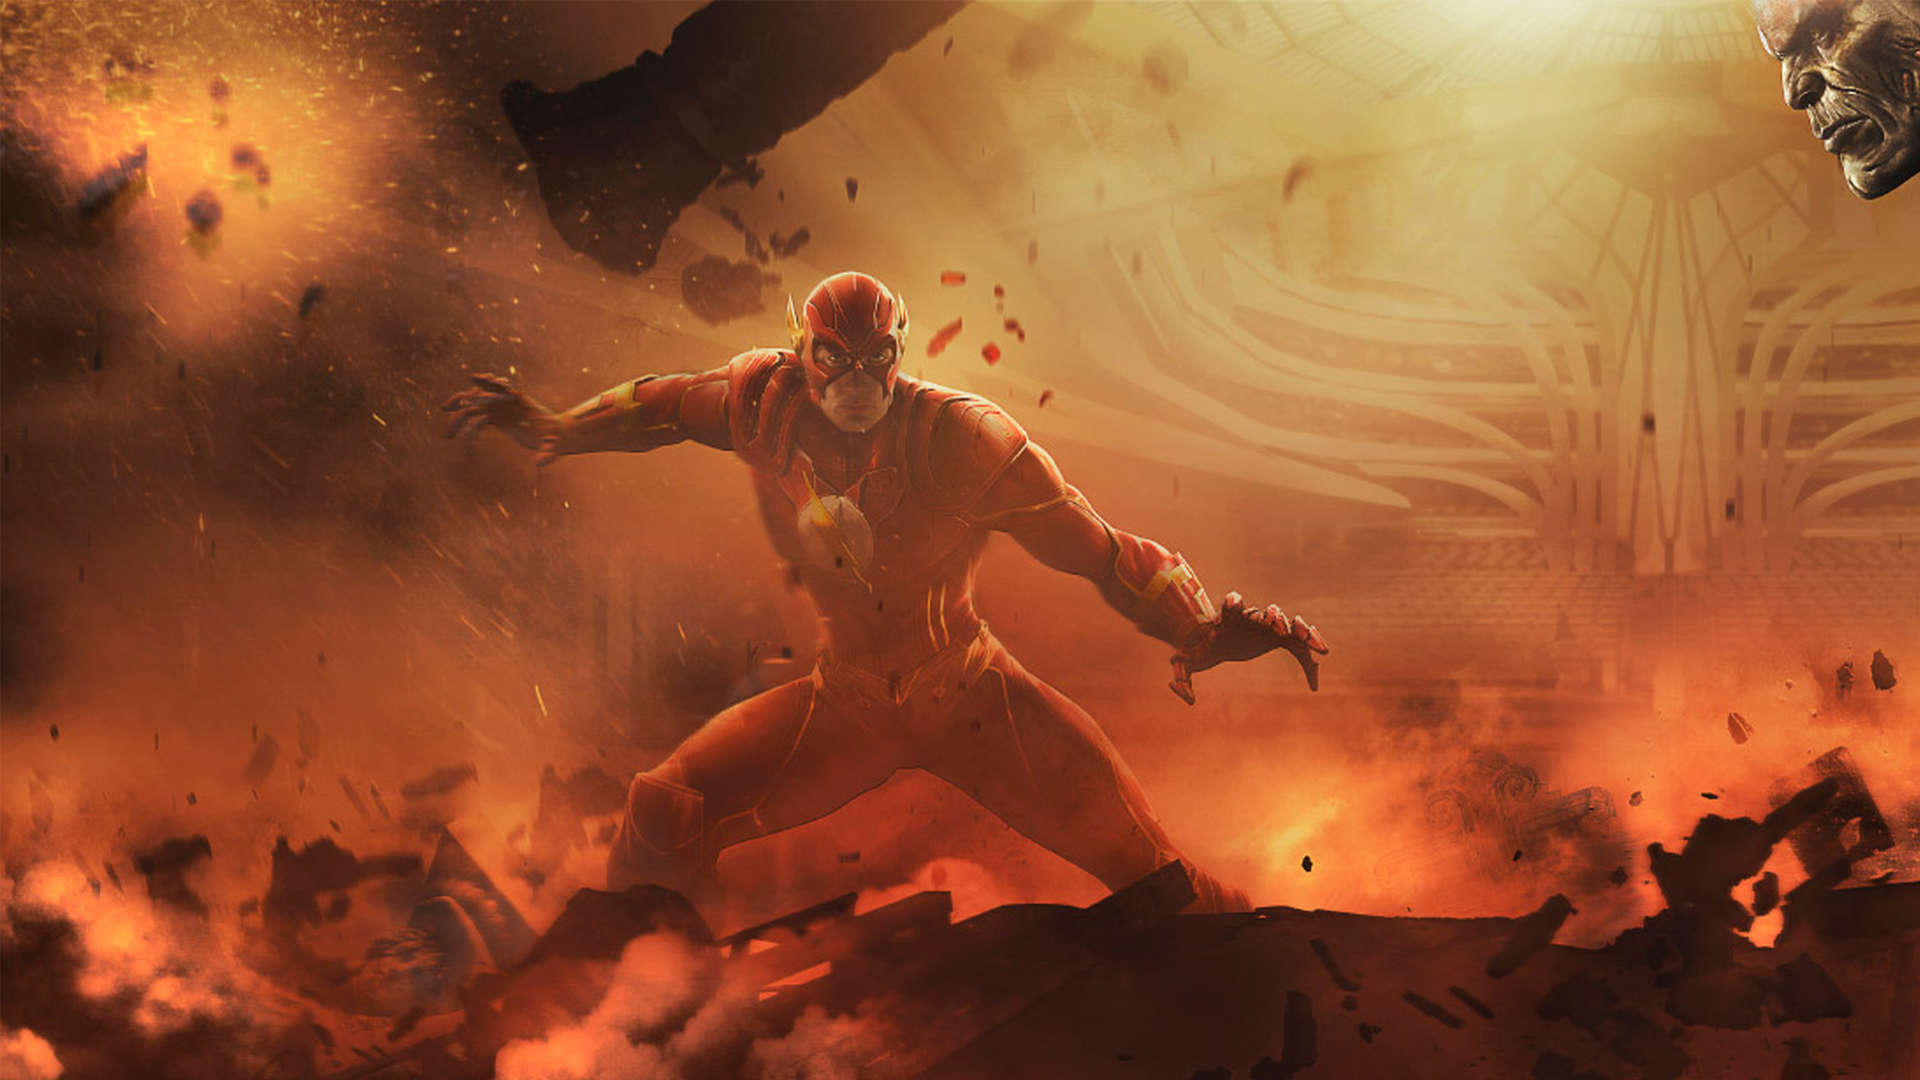 Wallpaper The Flash 1080p Background Upload at May 16 2015 by Adam 1920x1080